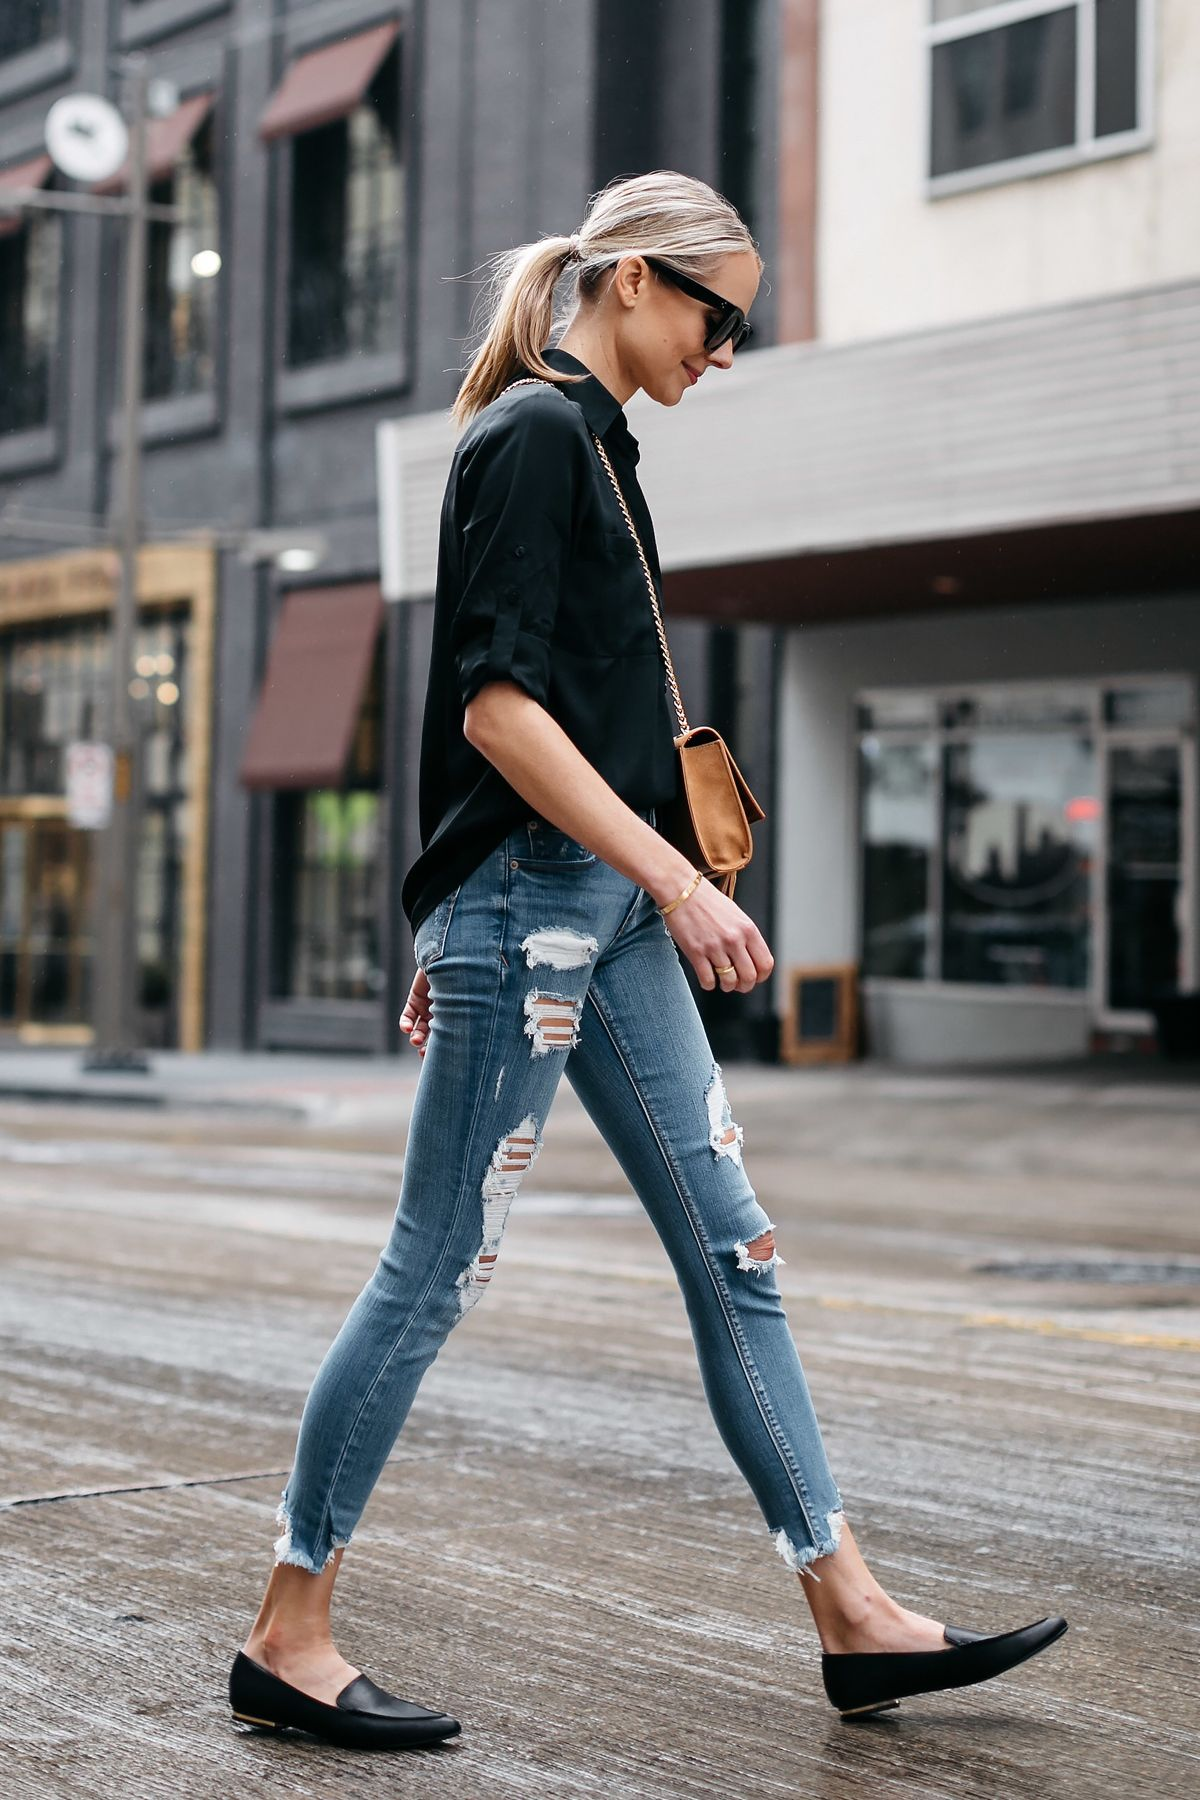 Blonde Woman Wearing Express Black Equipment Shirt Denim Ripped